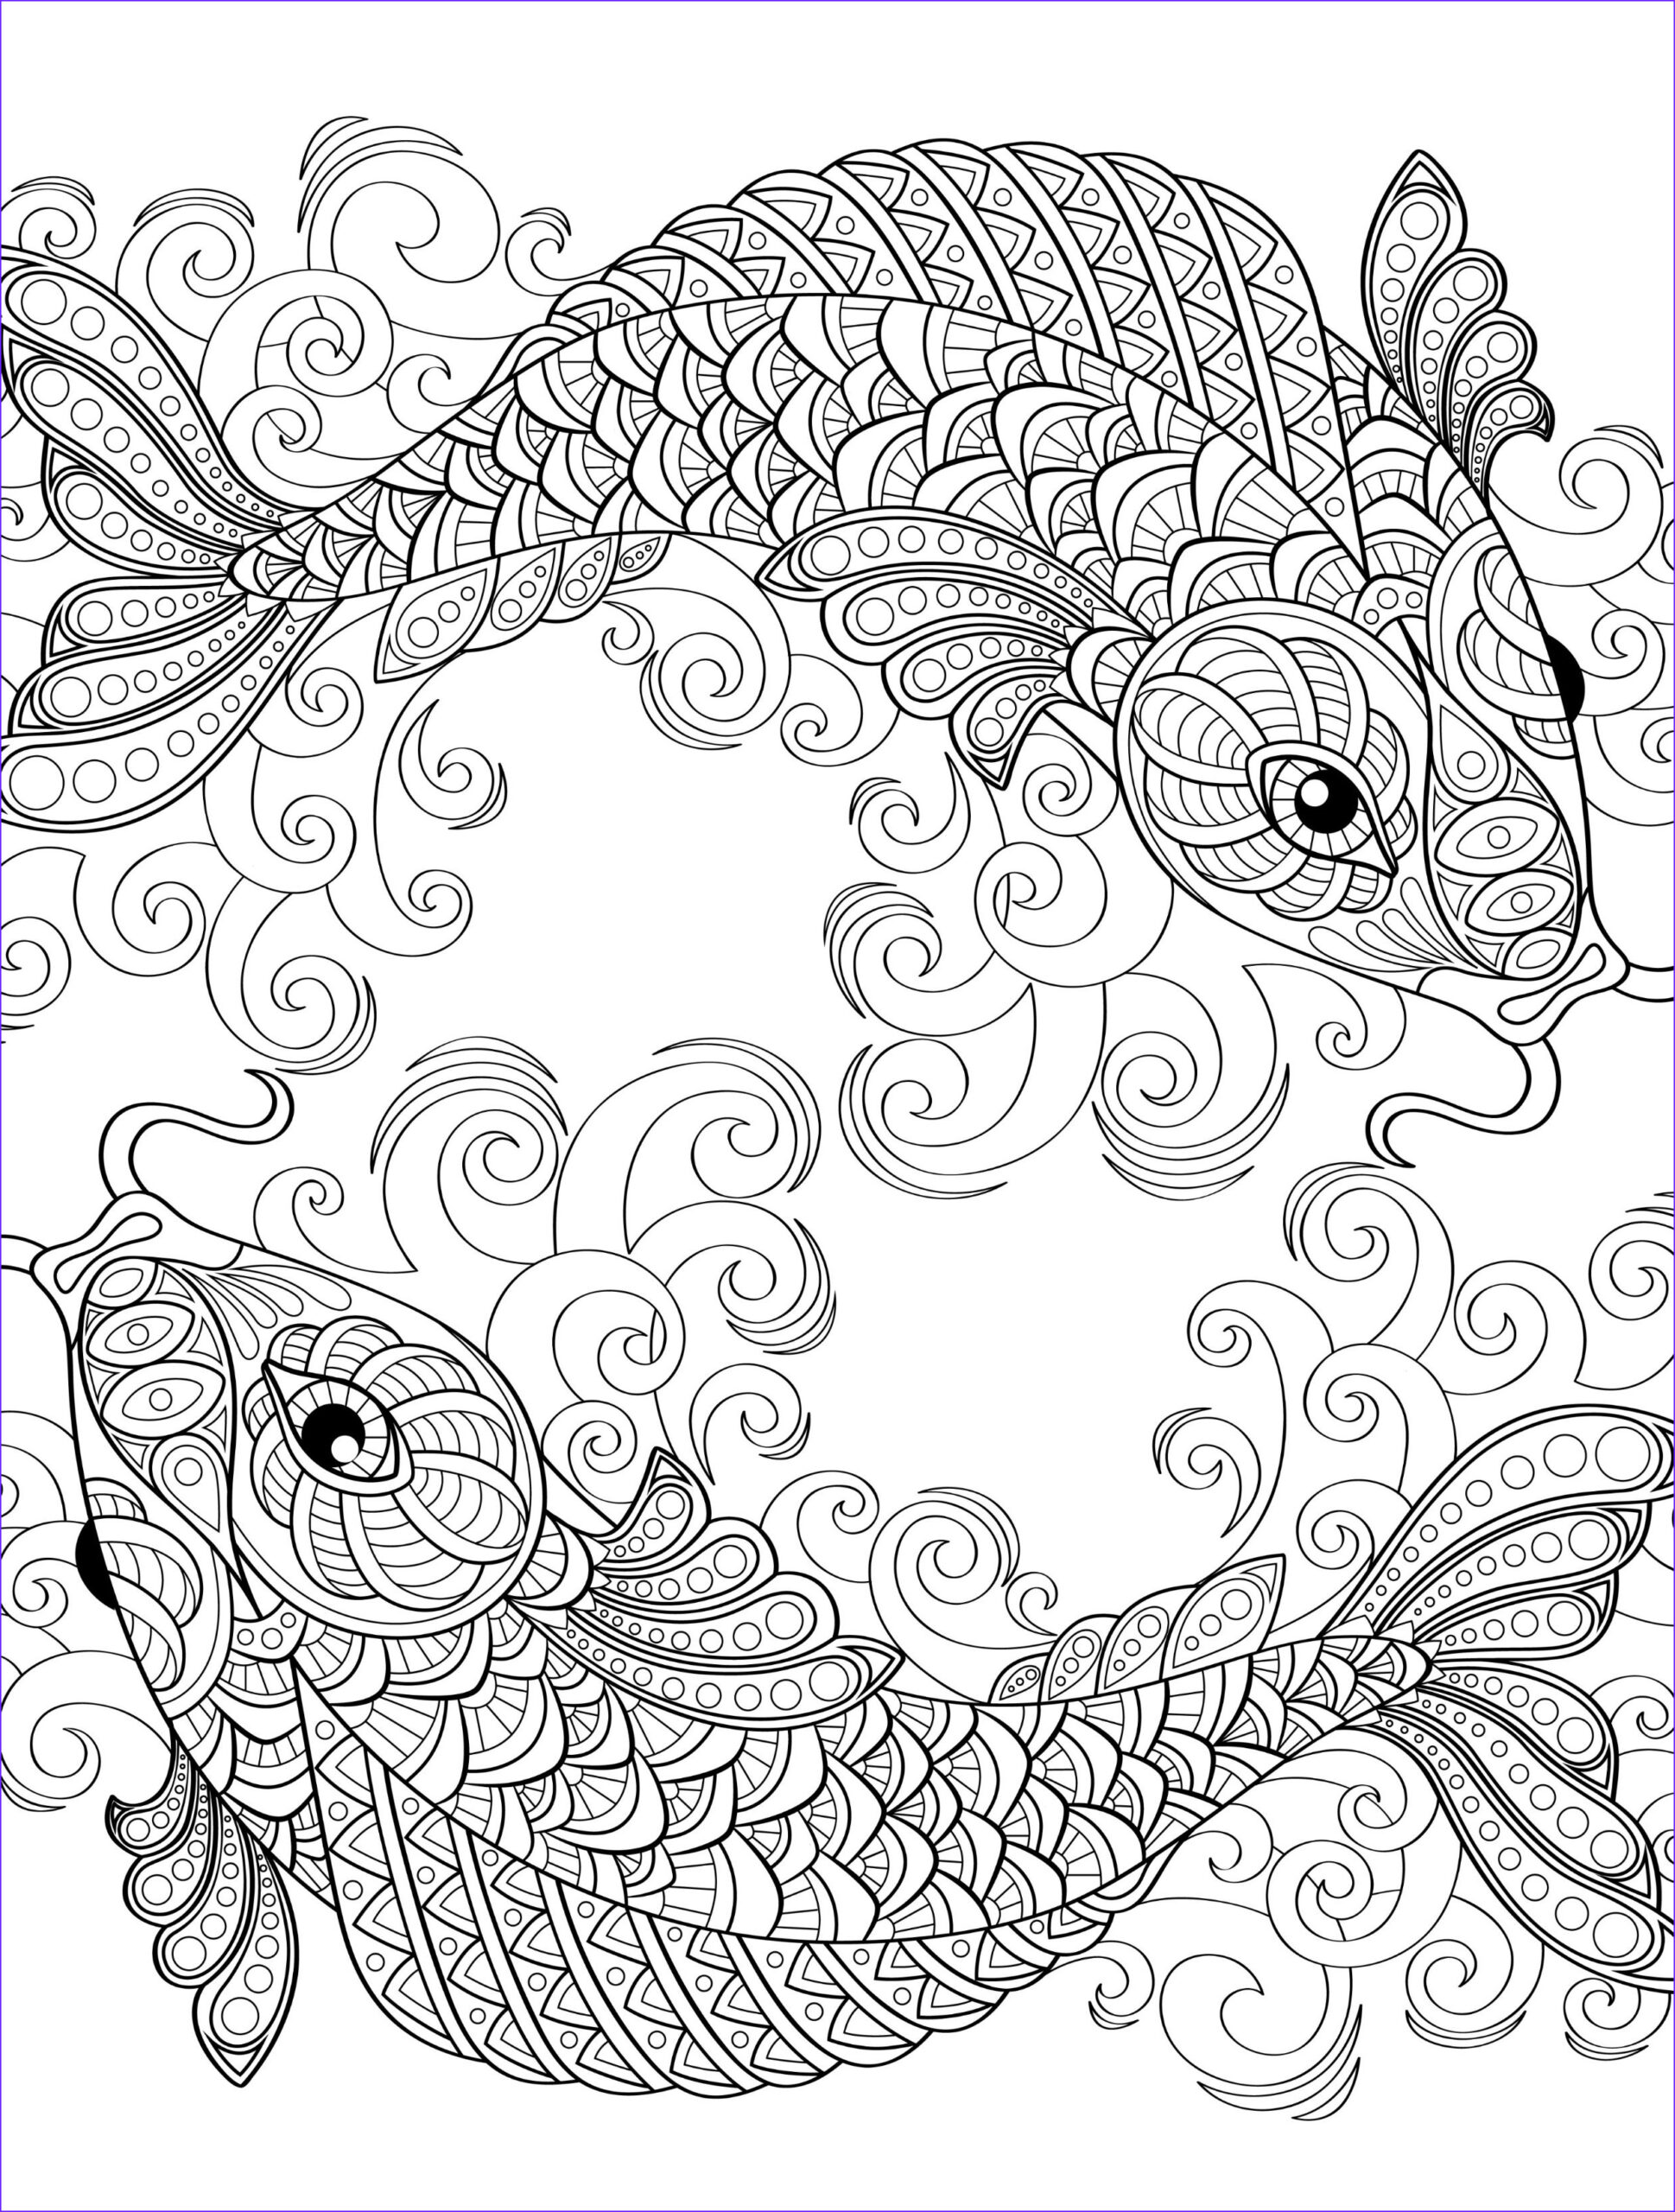 Adult Coloring Pages to Print Beautiful Gallery Pin On Coloring